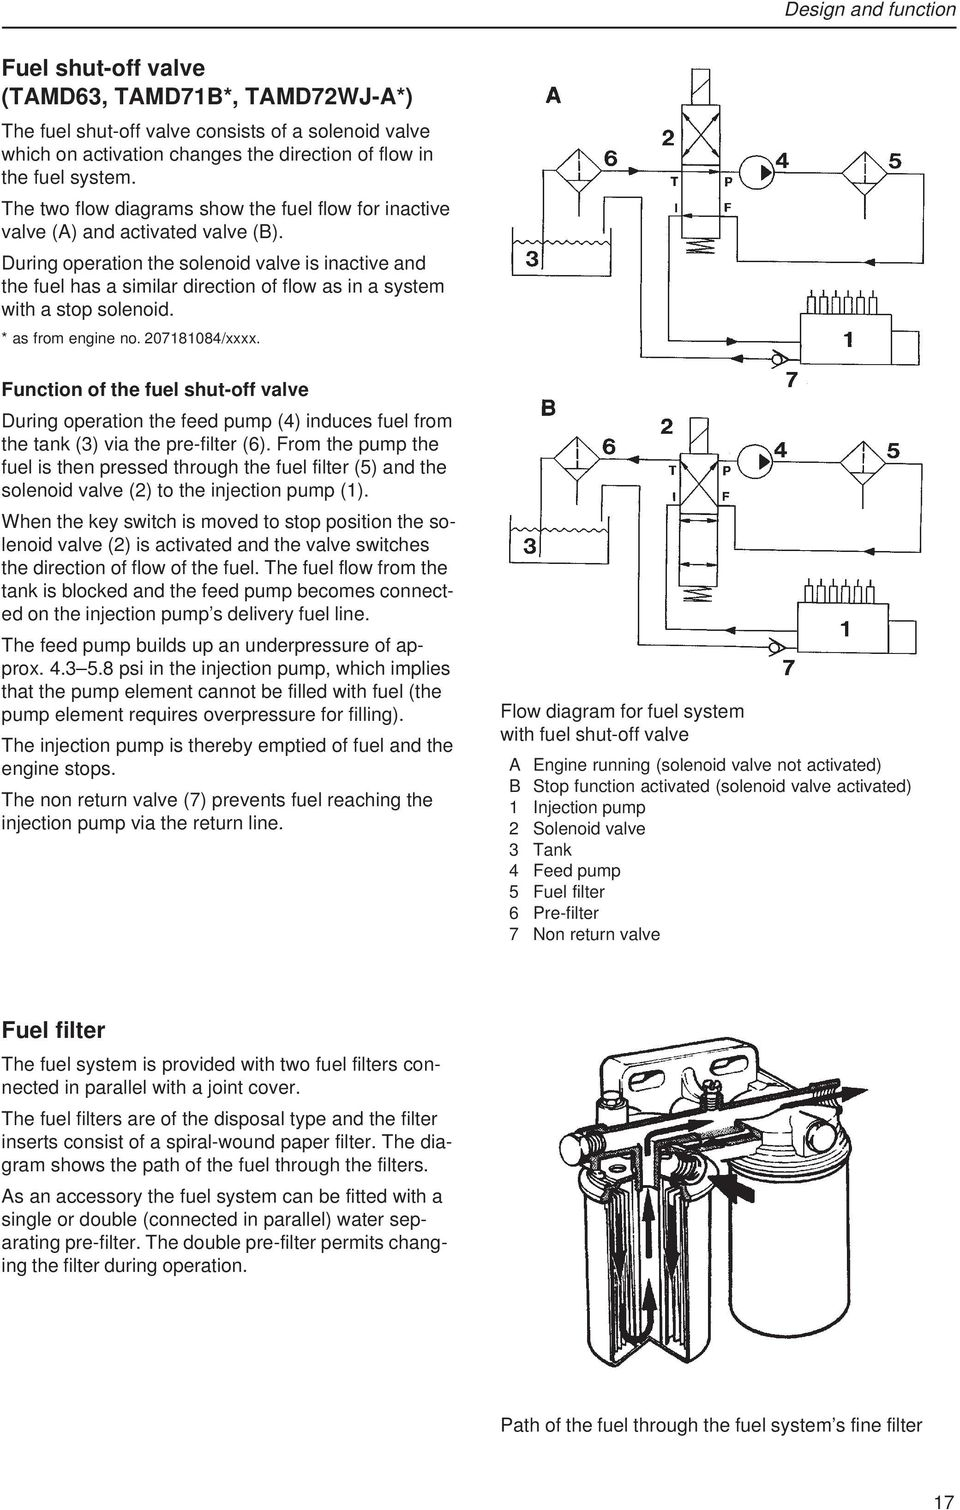 Workshop Manual Fuel System 20 Tamd61a Tamd62a Tamd63l A 7 3 Filter Diagram During Operation The Solenoid Valve Is Inactive And Has Similar Direction Of Flow